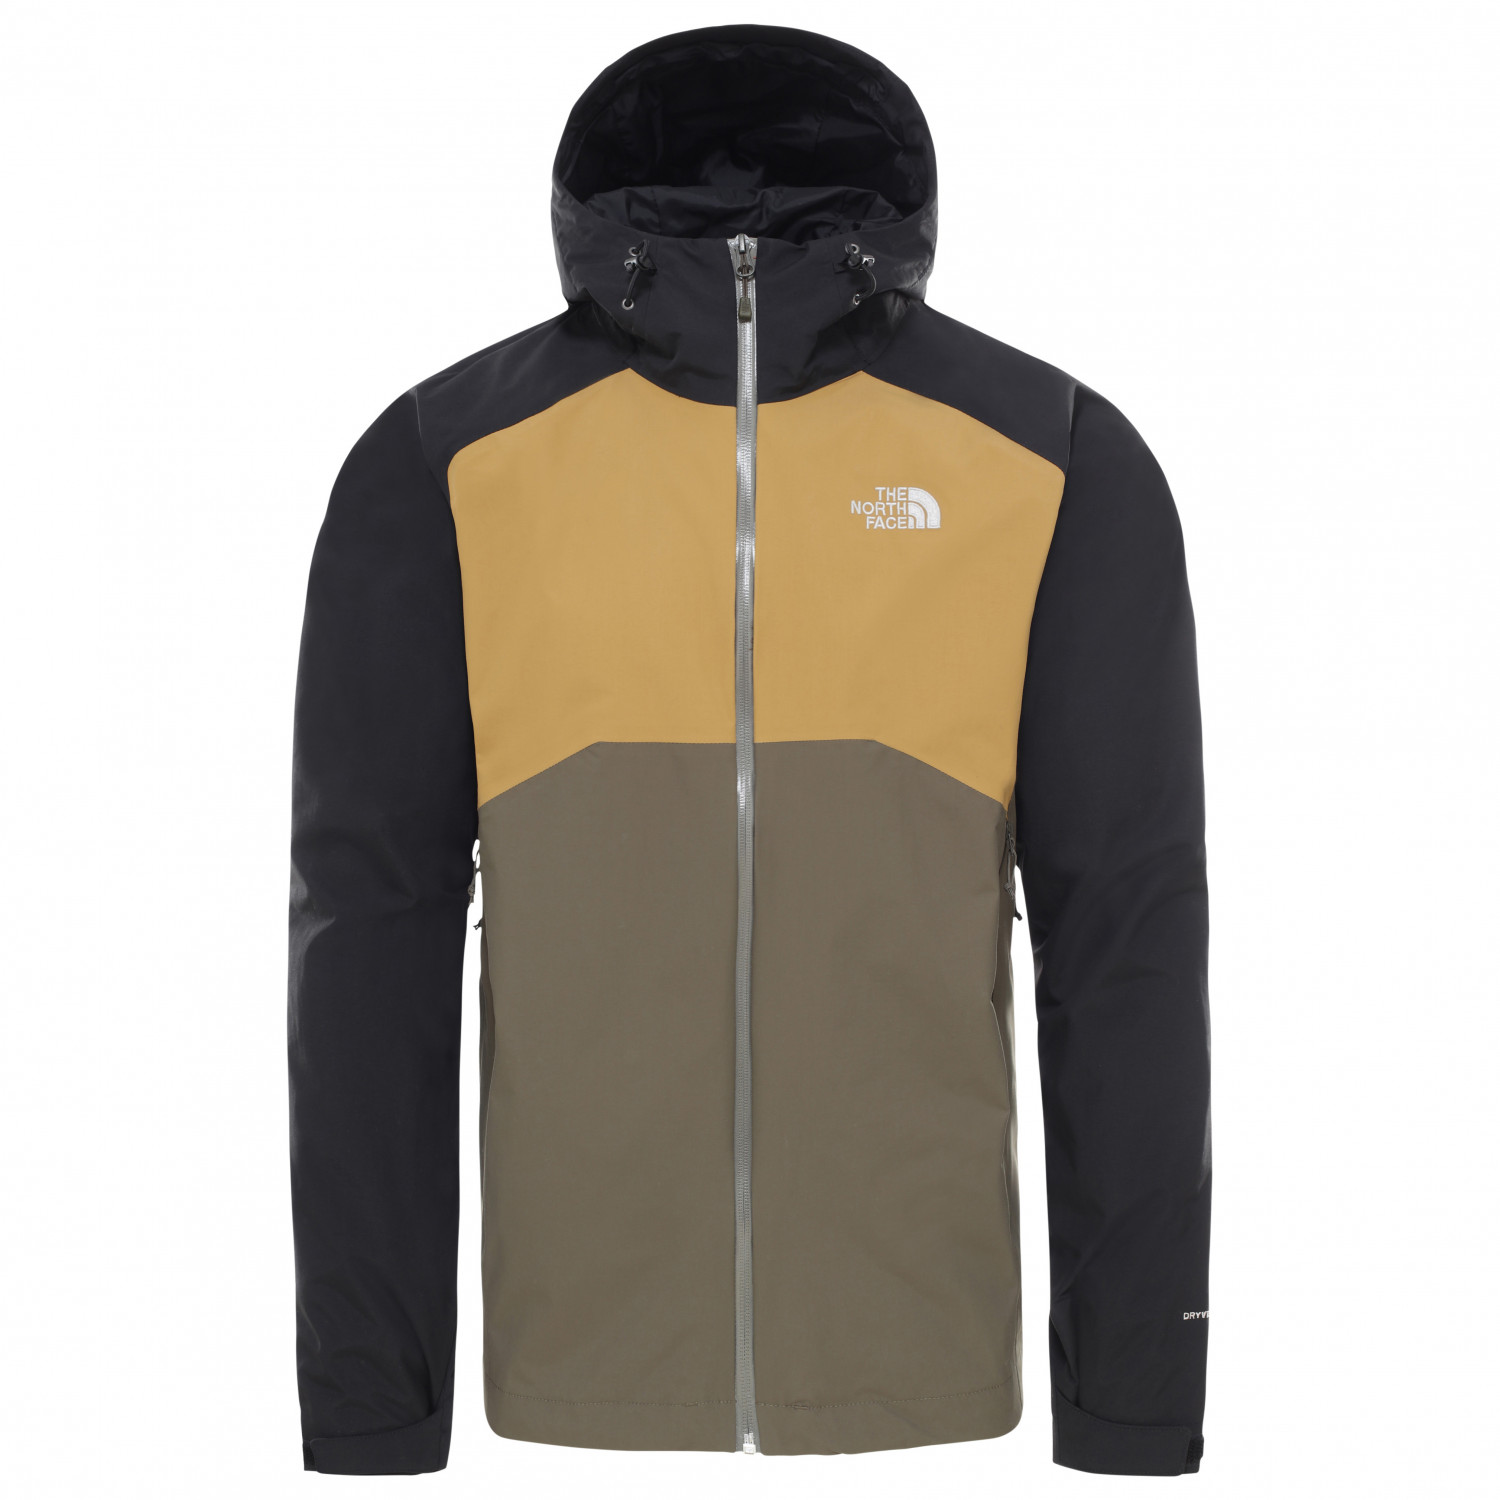 The North Face Stratos Jacket Hardshelljacke Herren